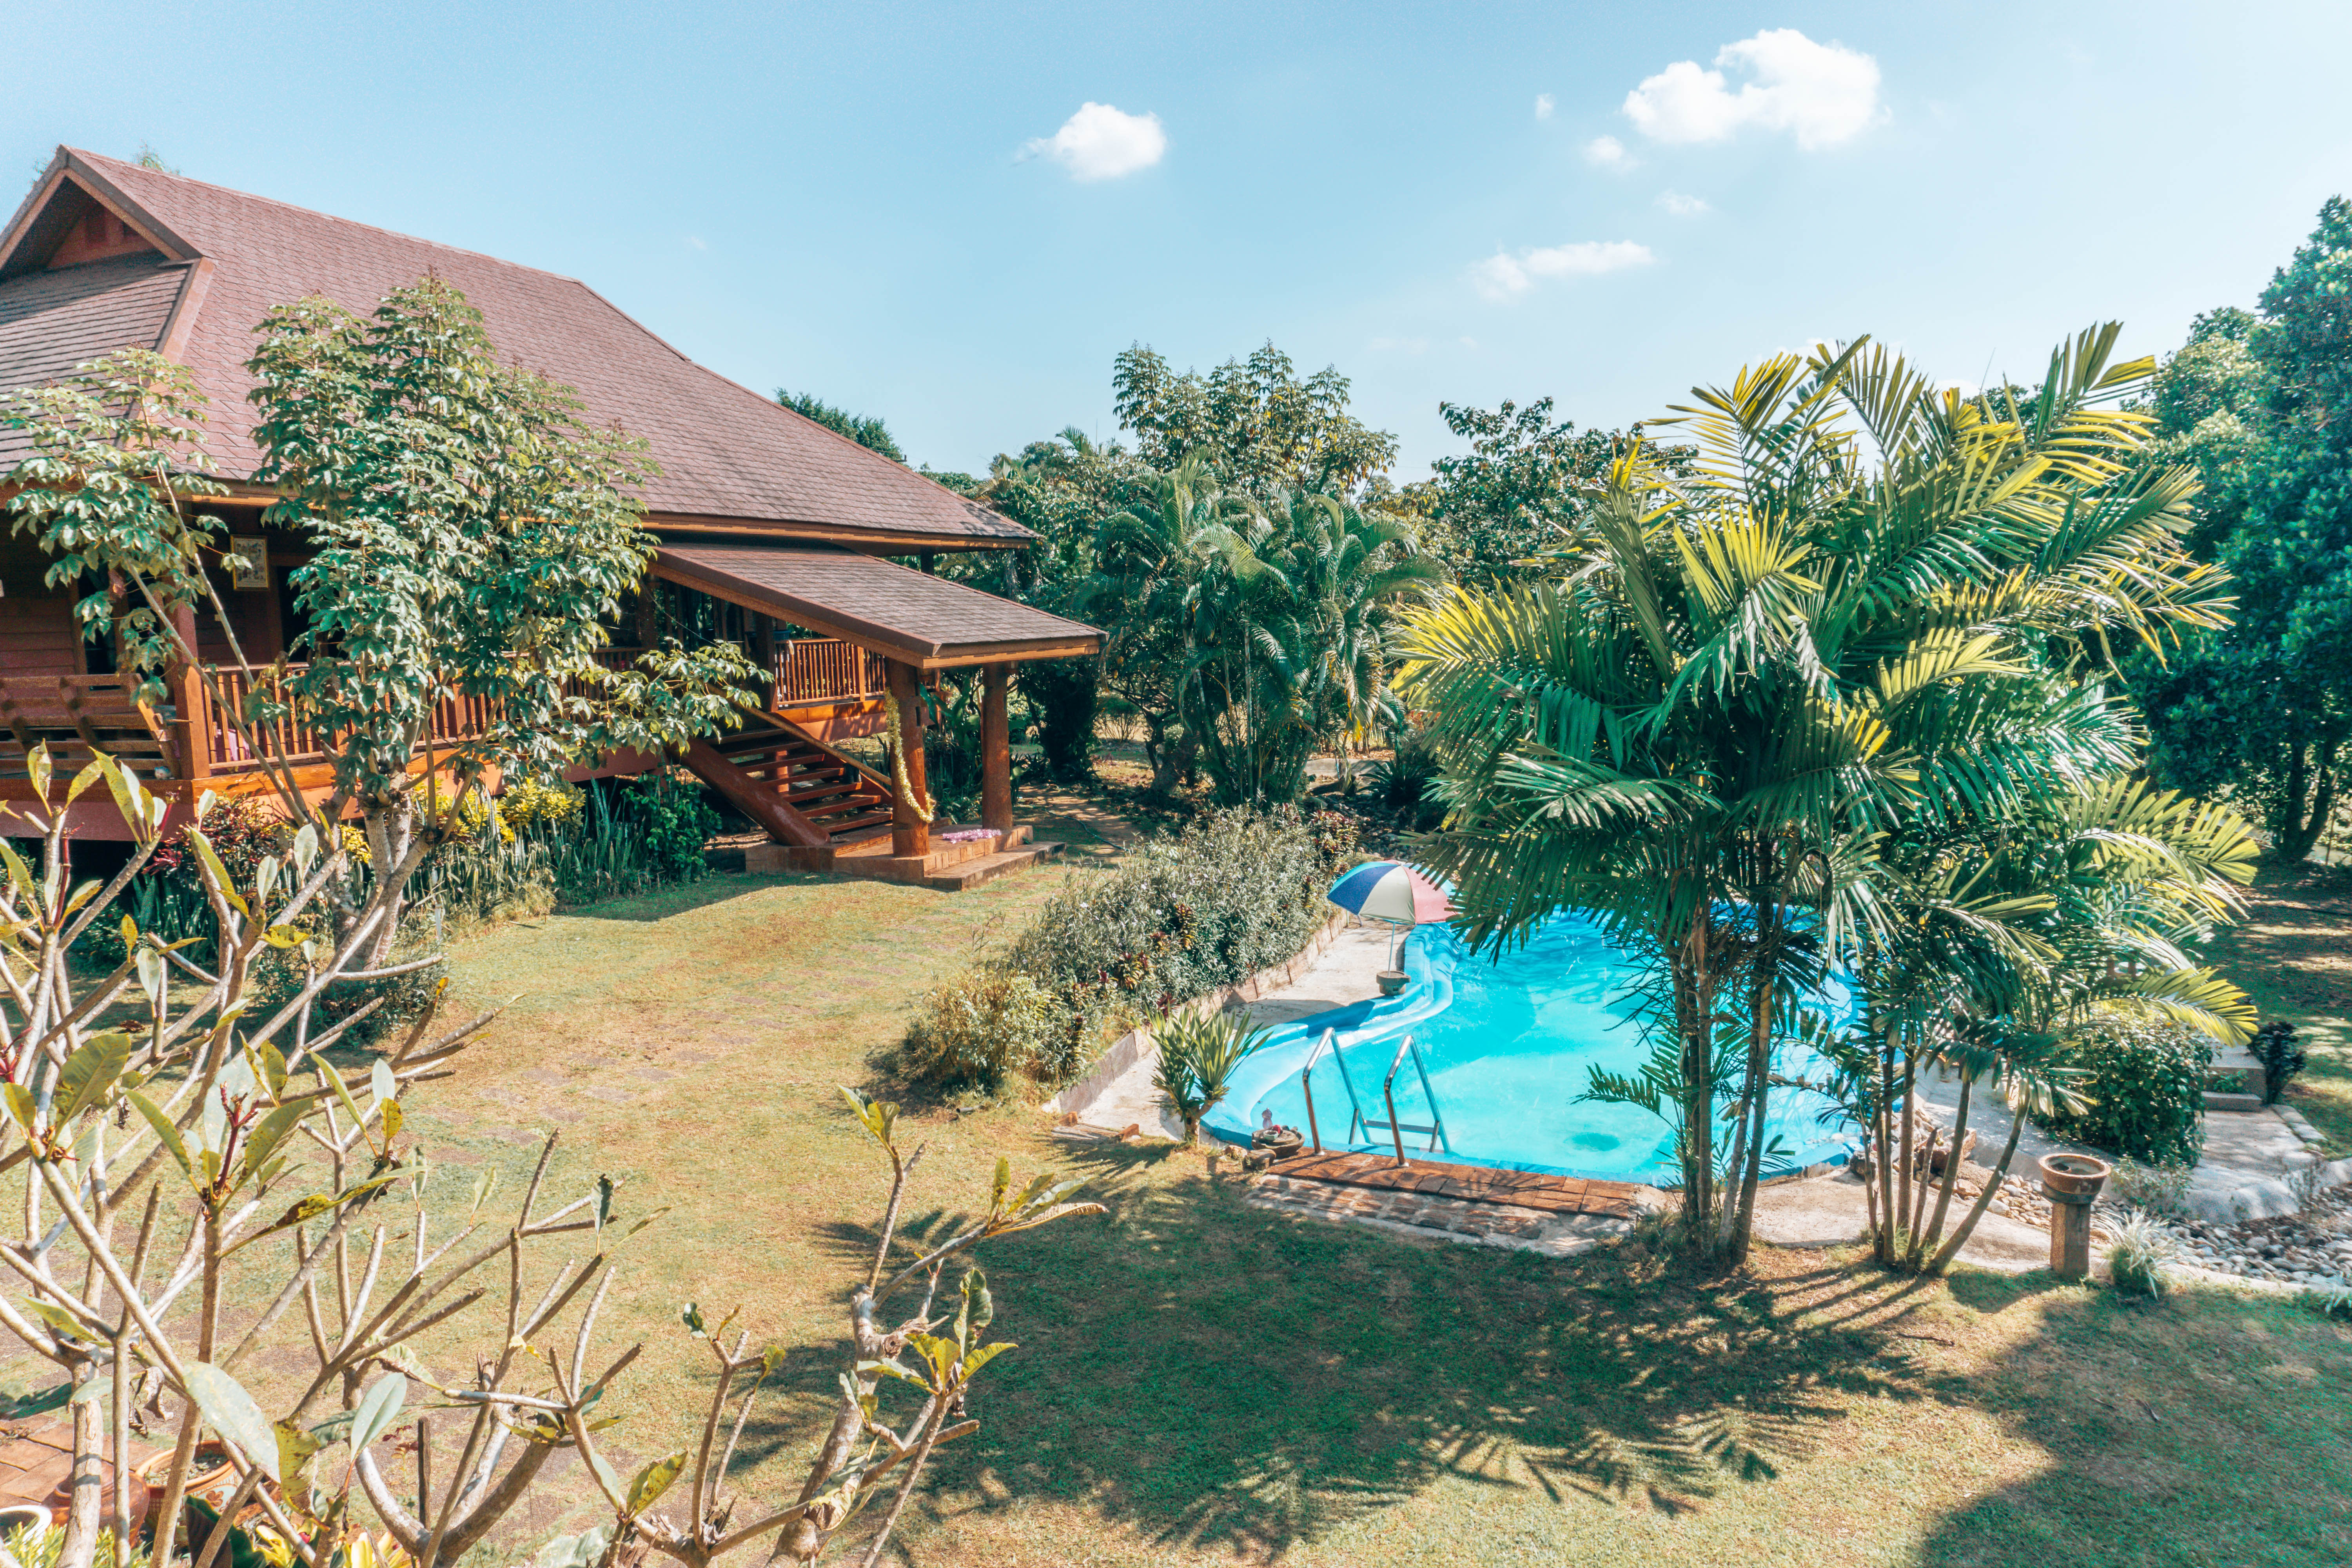 Our pool | Wipa Farmstay